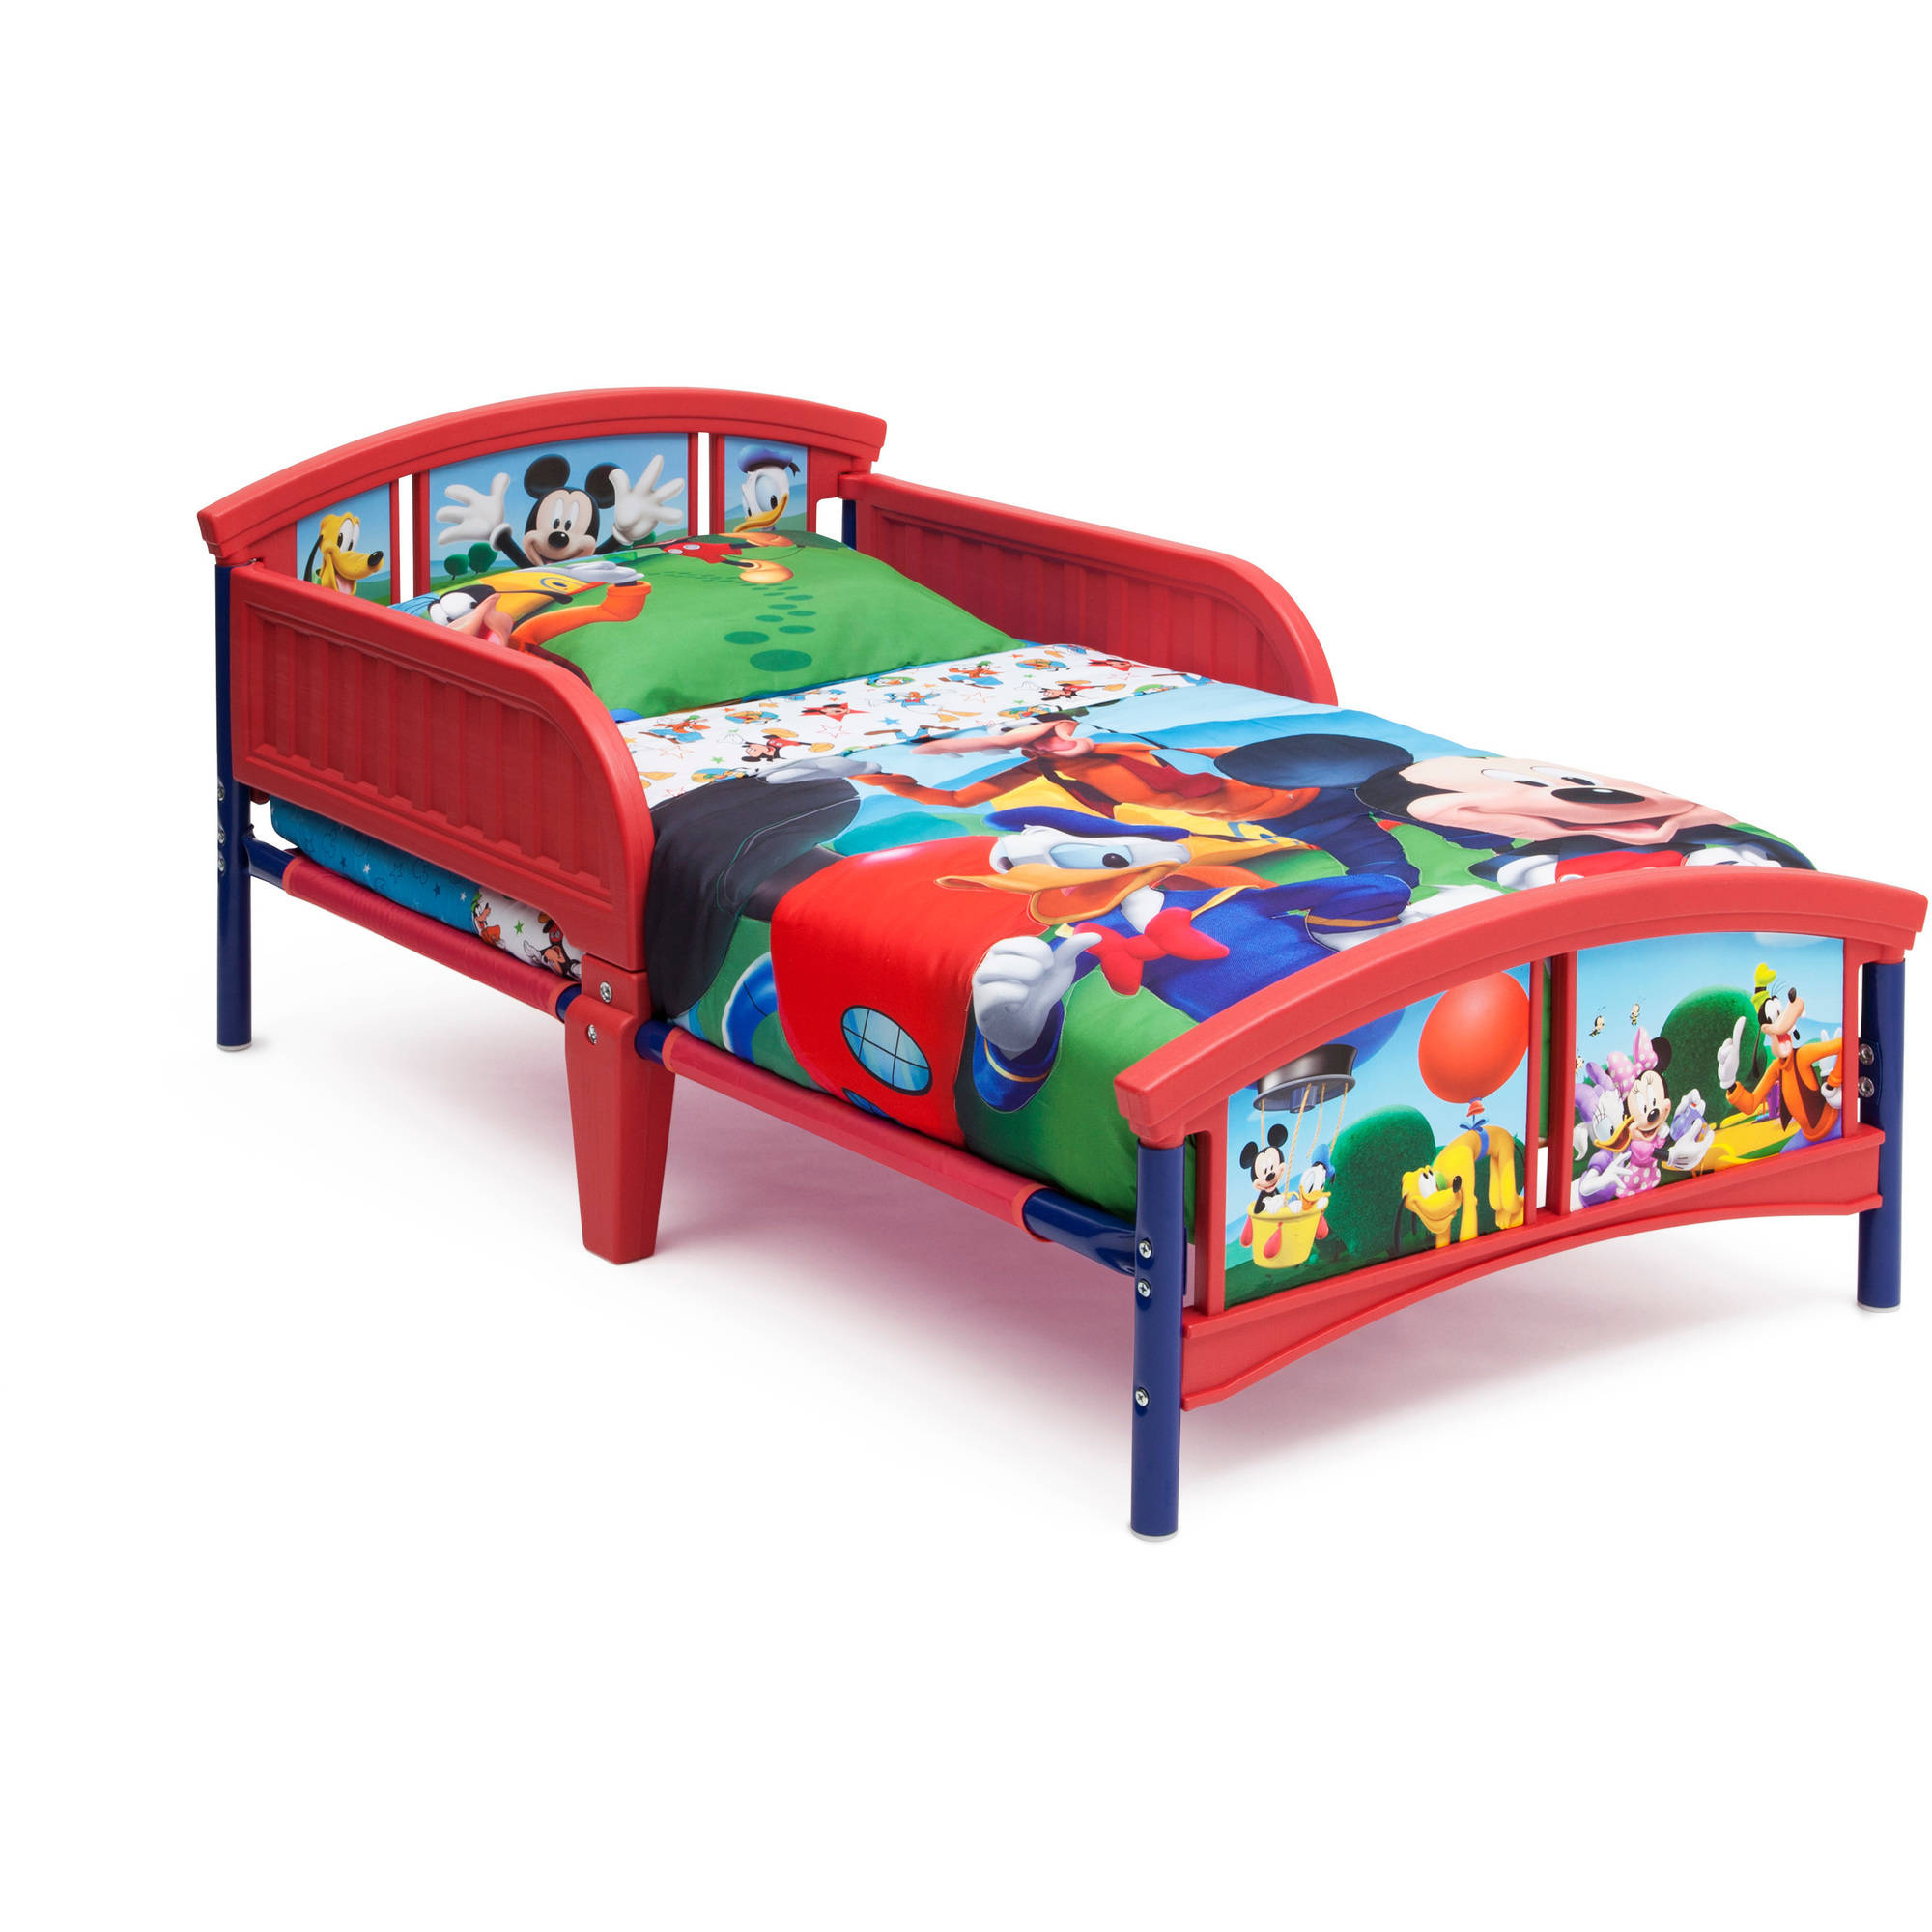 Disney Mickey Mouse Room In A Box With Bonus Chair Walmart Com